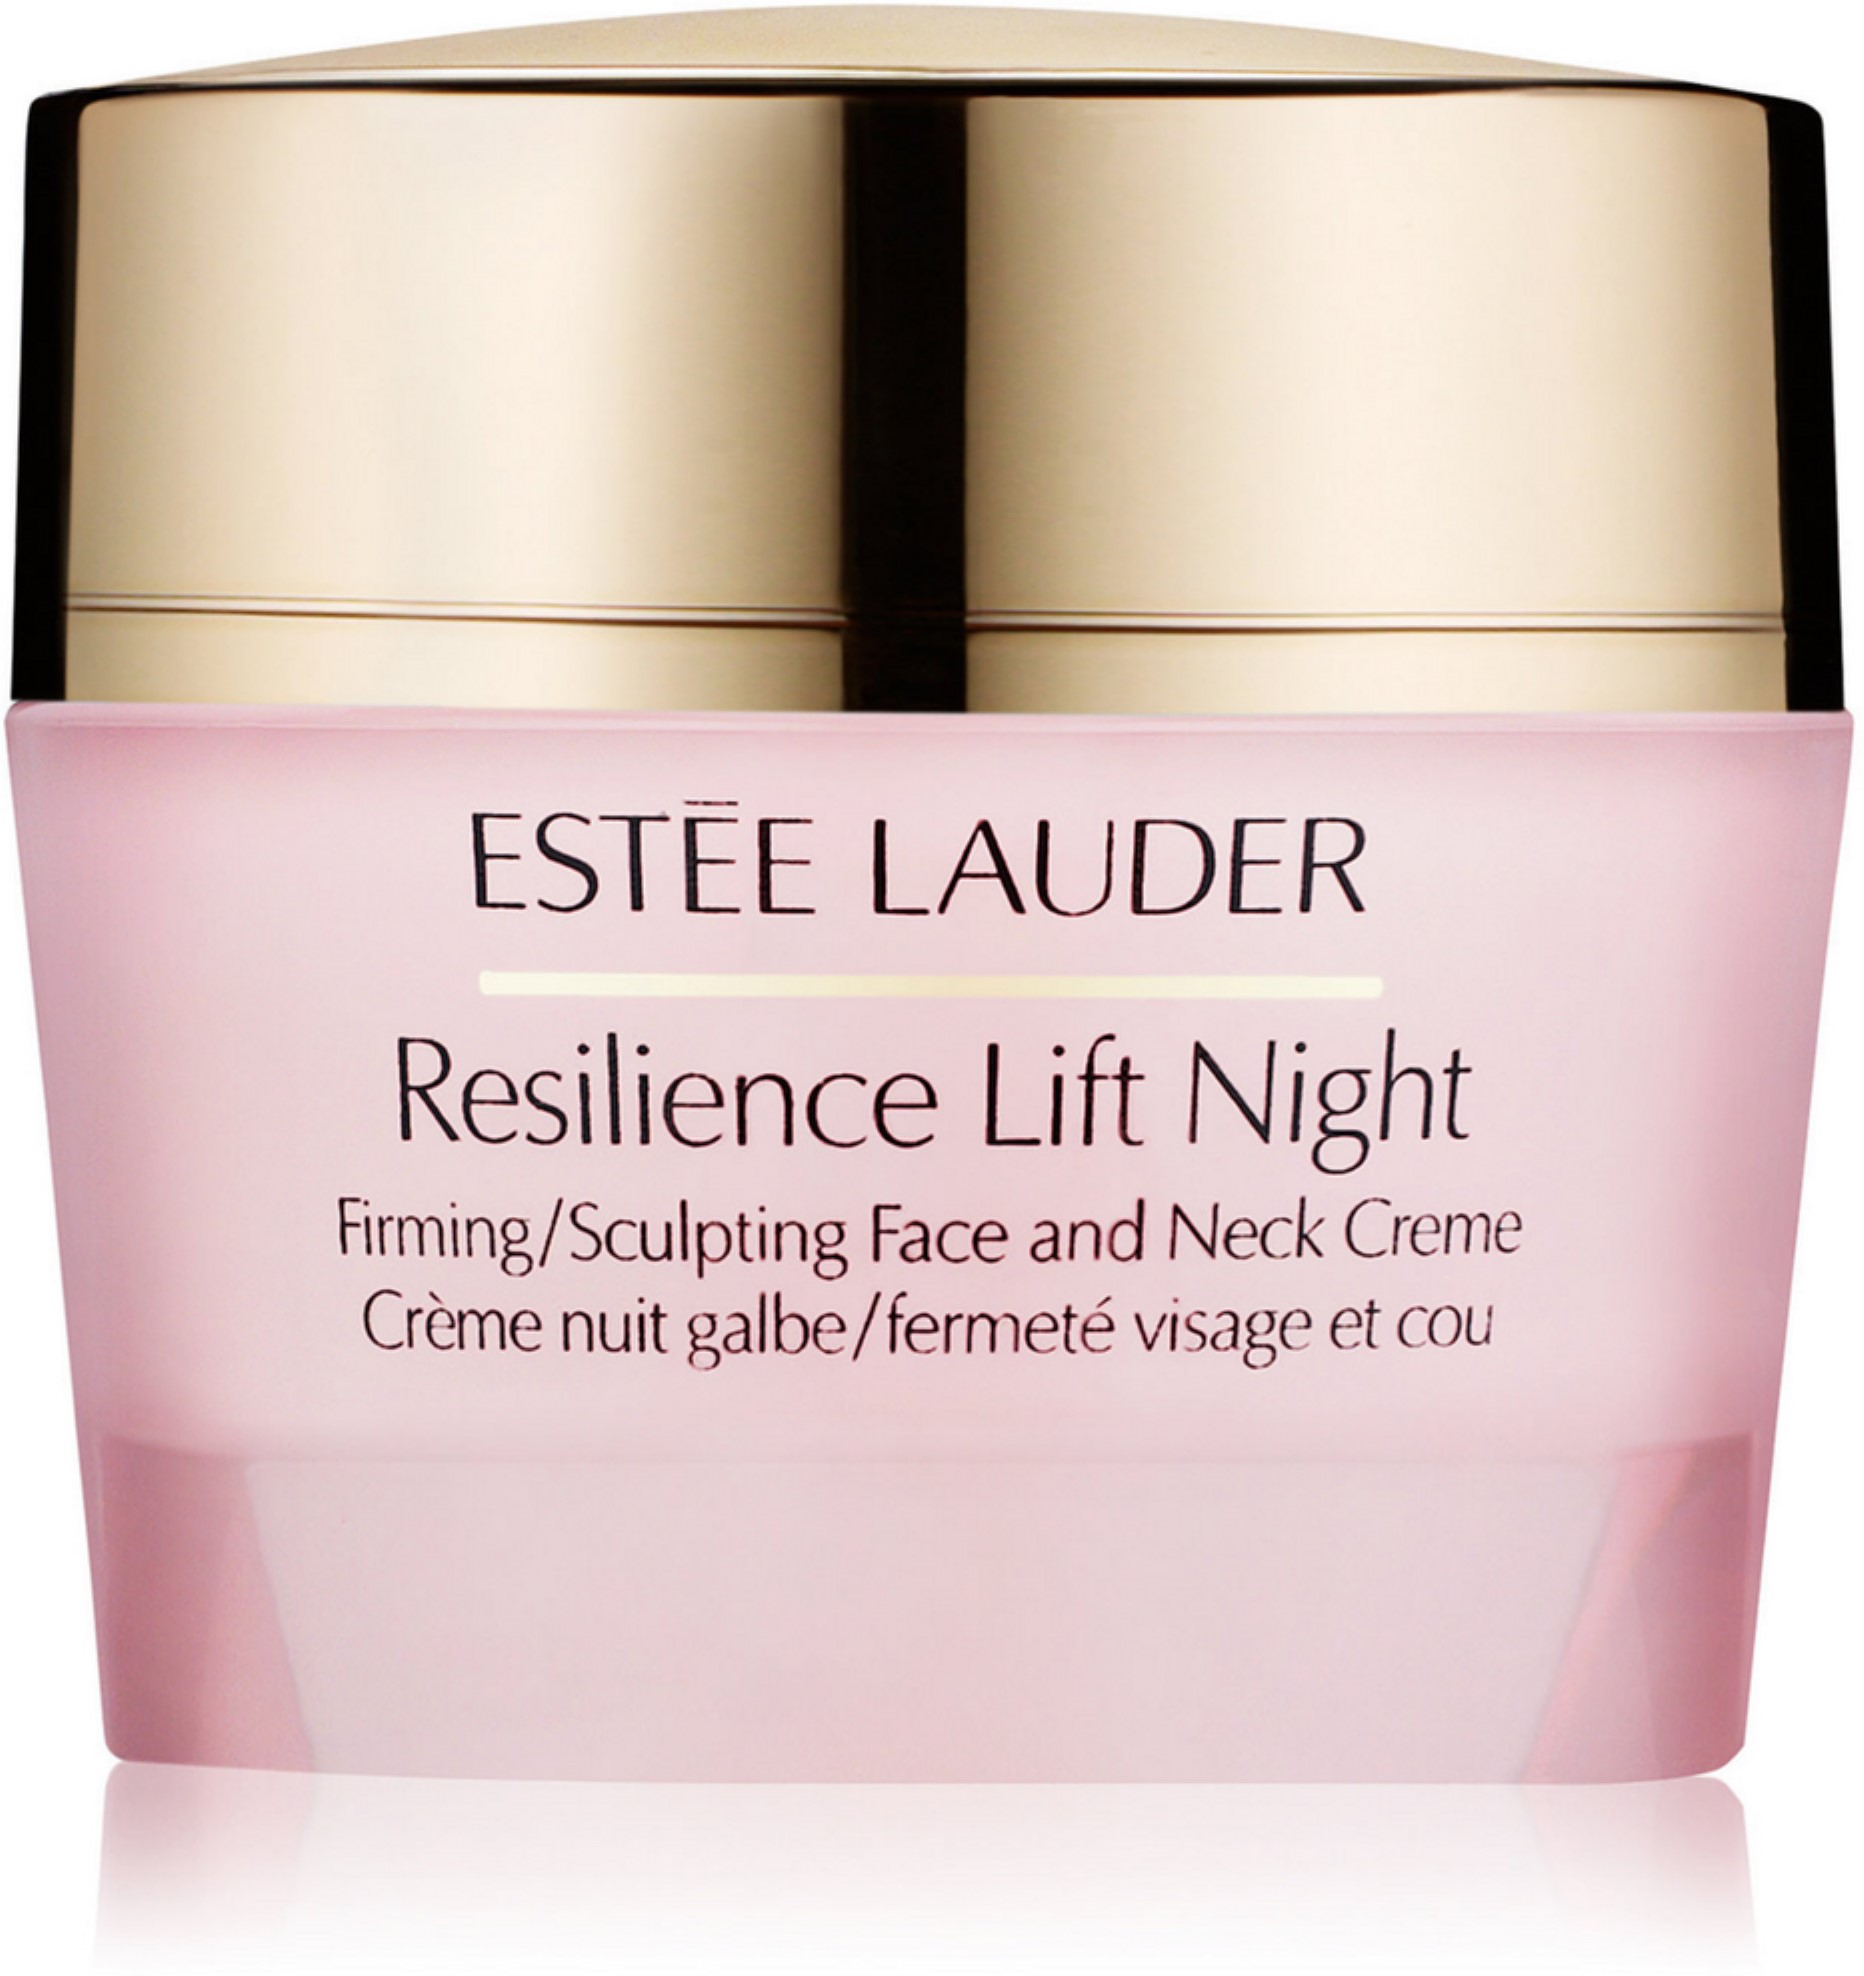 Estee Lauder Resilience Lift Night Firming/Sculpting Face...